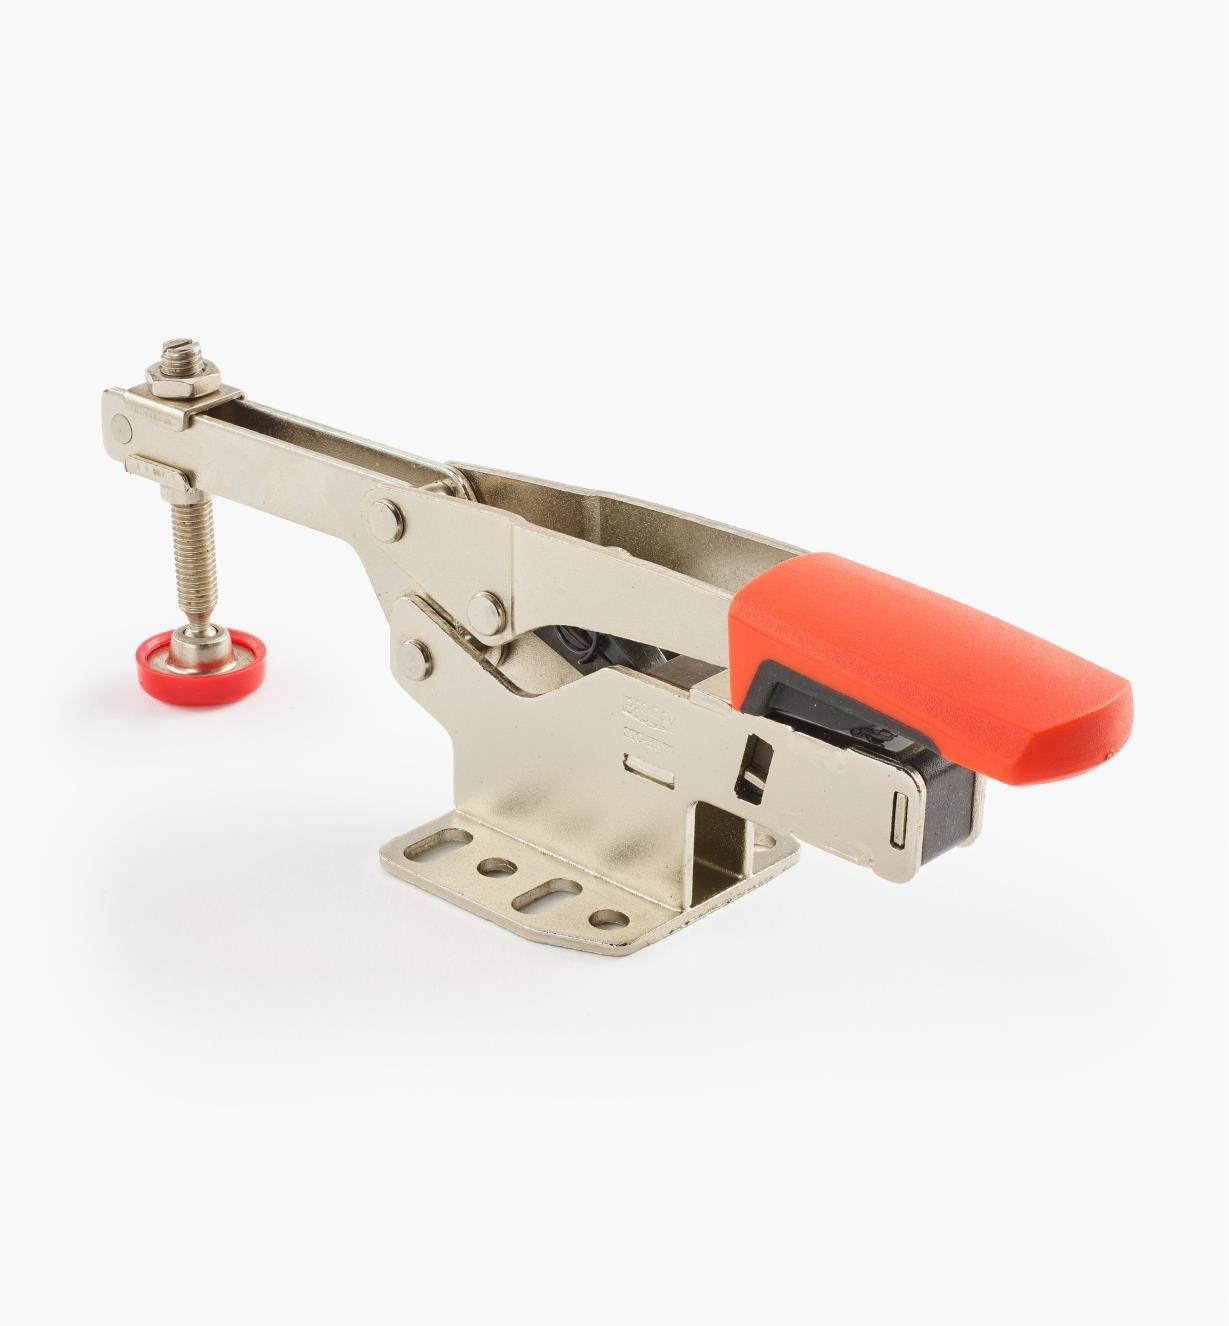 17F7202 - Bessey H-P Horiz. Auto-Adjust Toggle Clamp